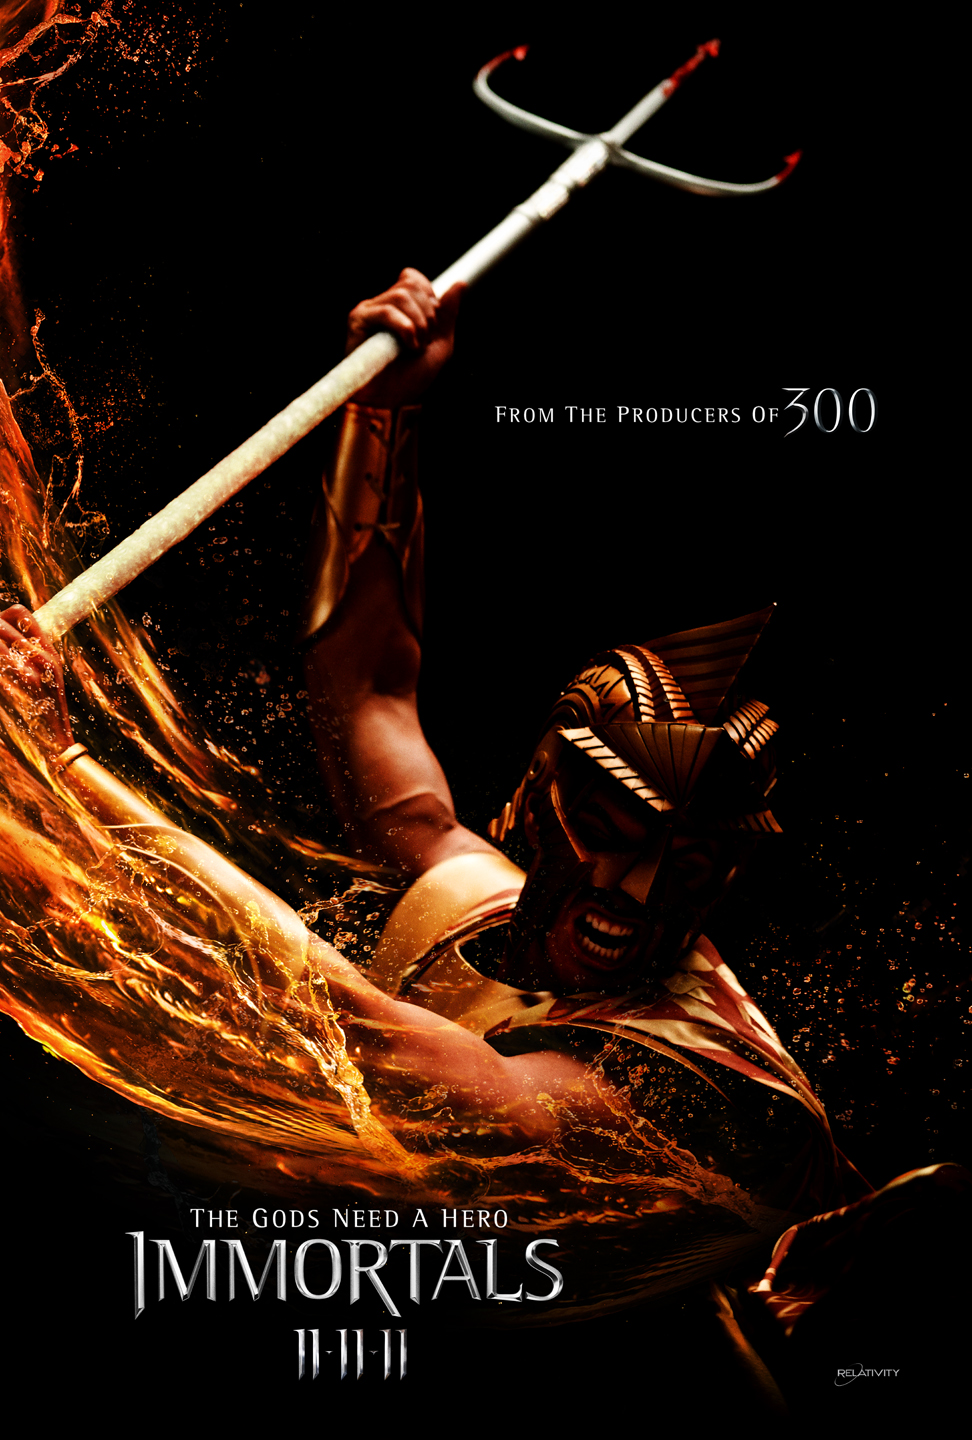 Movie Review: The 'Immortals' Makes Me Glad I'm Human